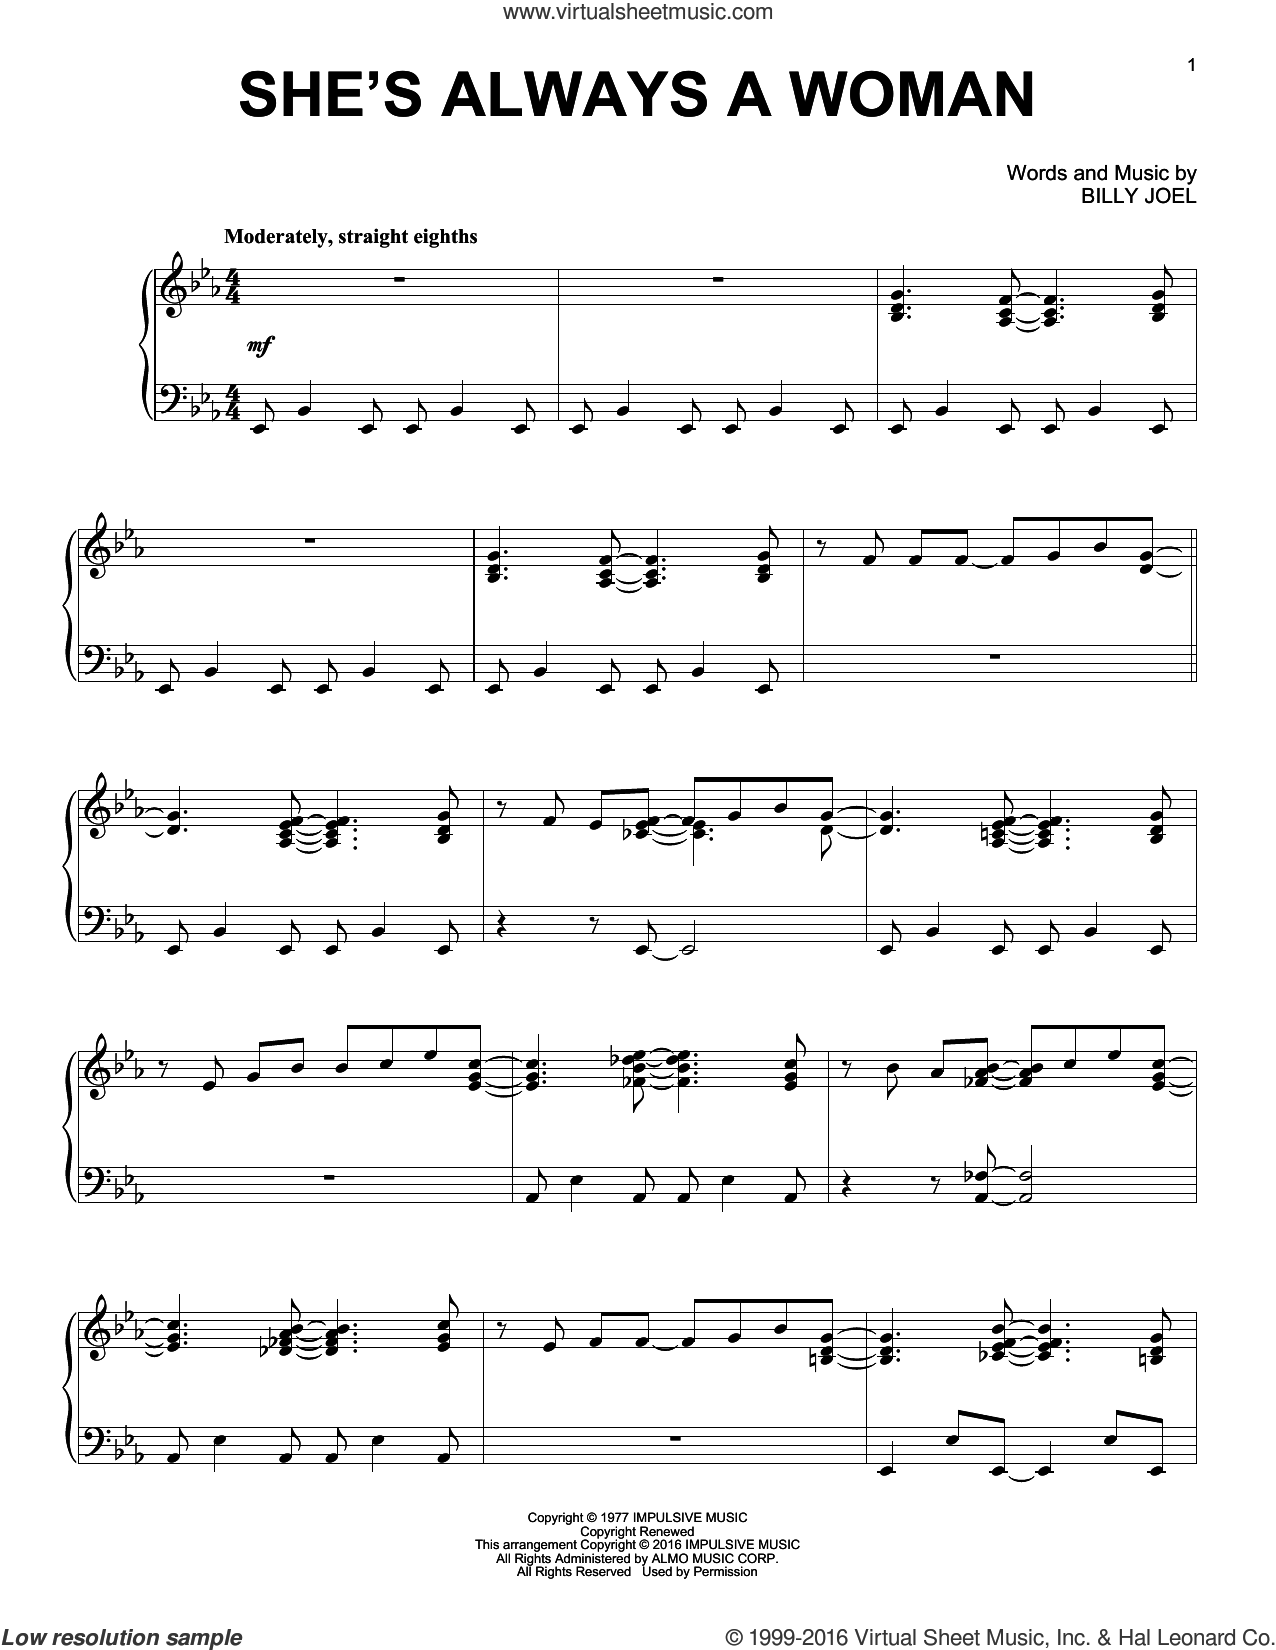 She's Always A Woman sheet music for piano solo by Billy Joel. Score Image Preview.